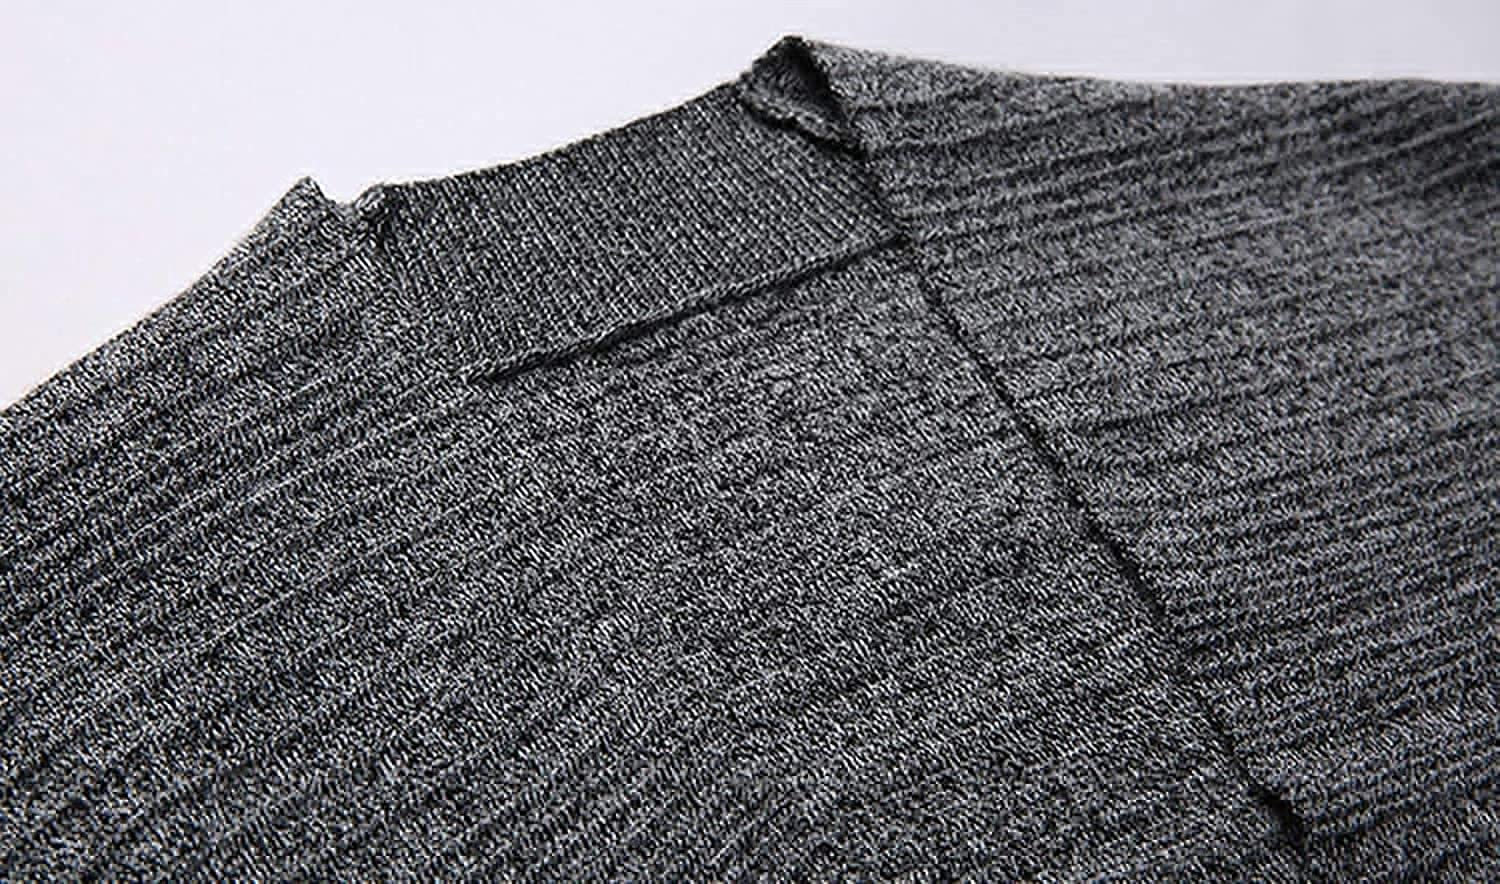 Men's Casual Work Wear V-Neck 2 Button Knitted Cardigan Sweater